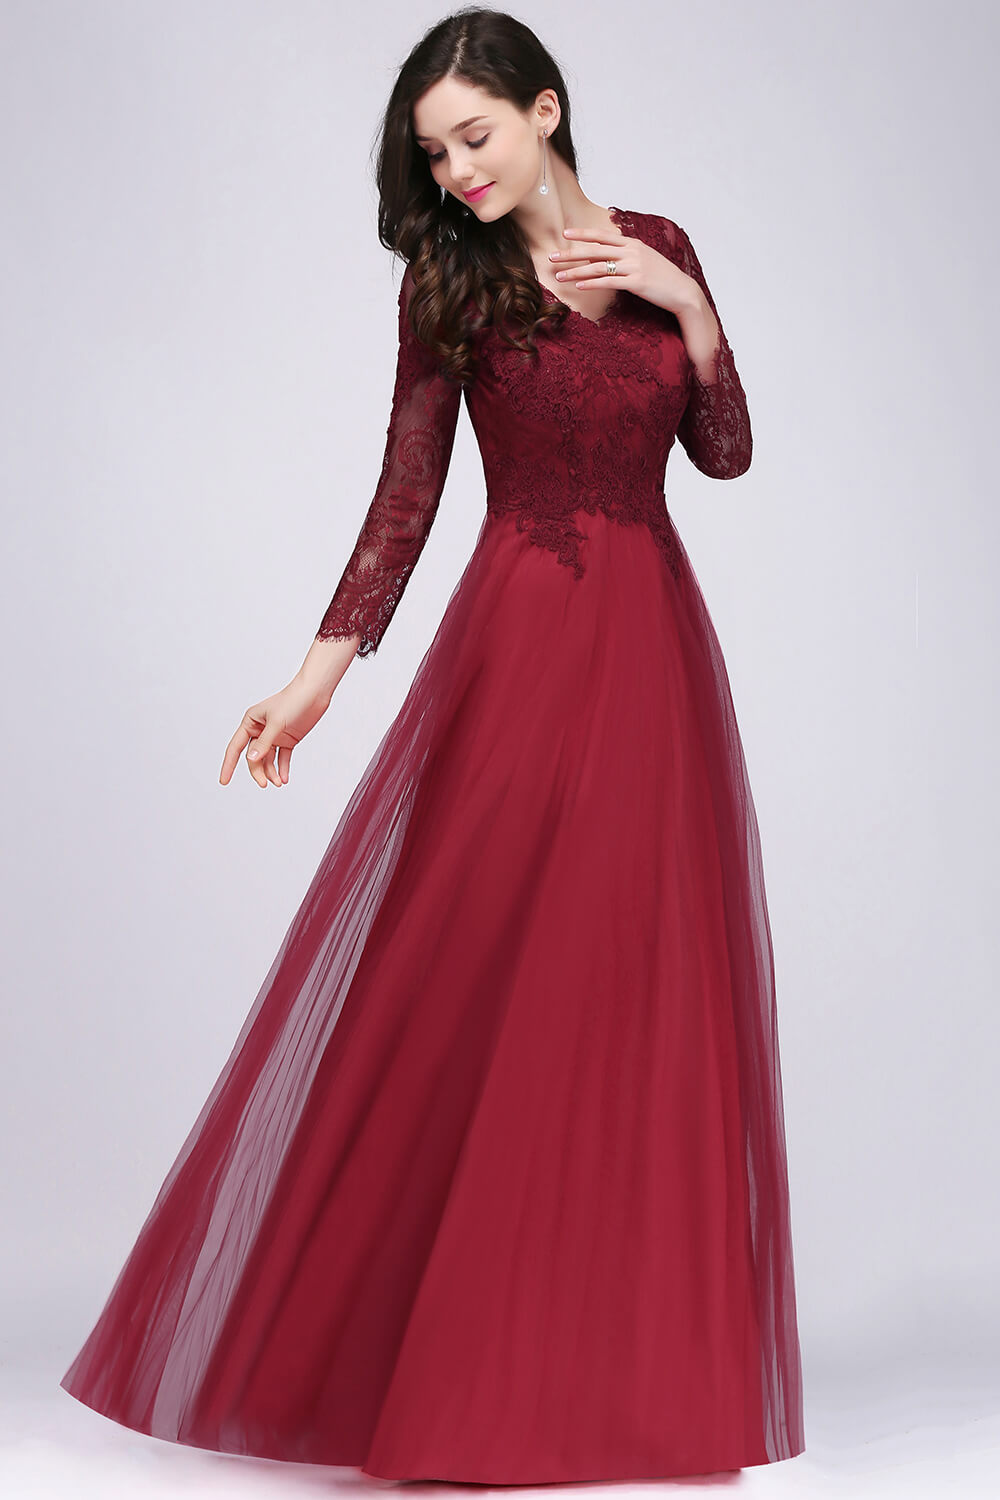 Evening Dress Burgundy Lace Long Sleeve Formal Party Evening Dresses